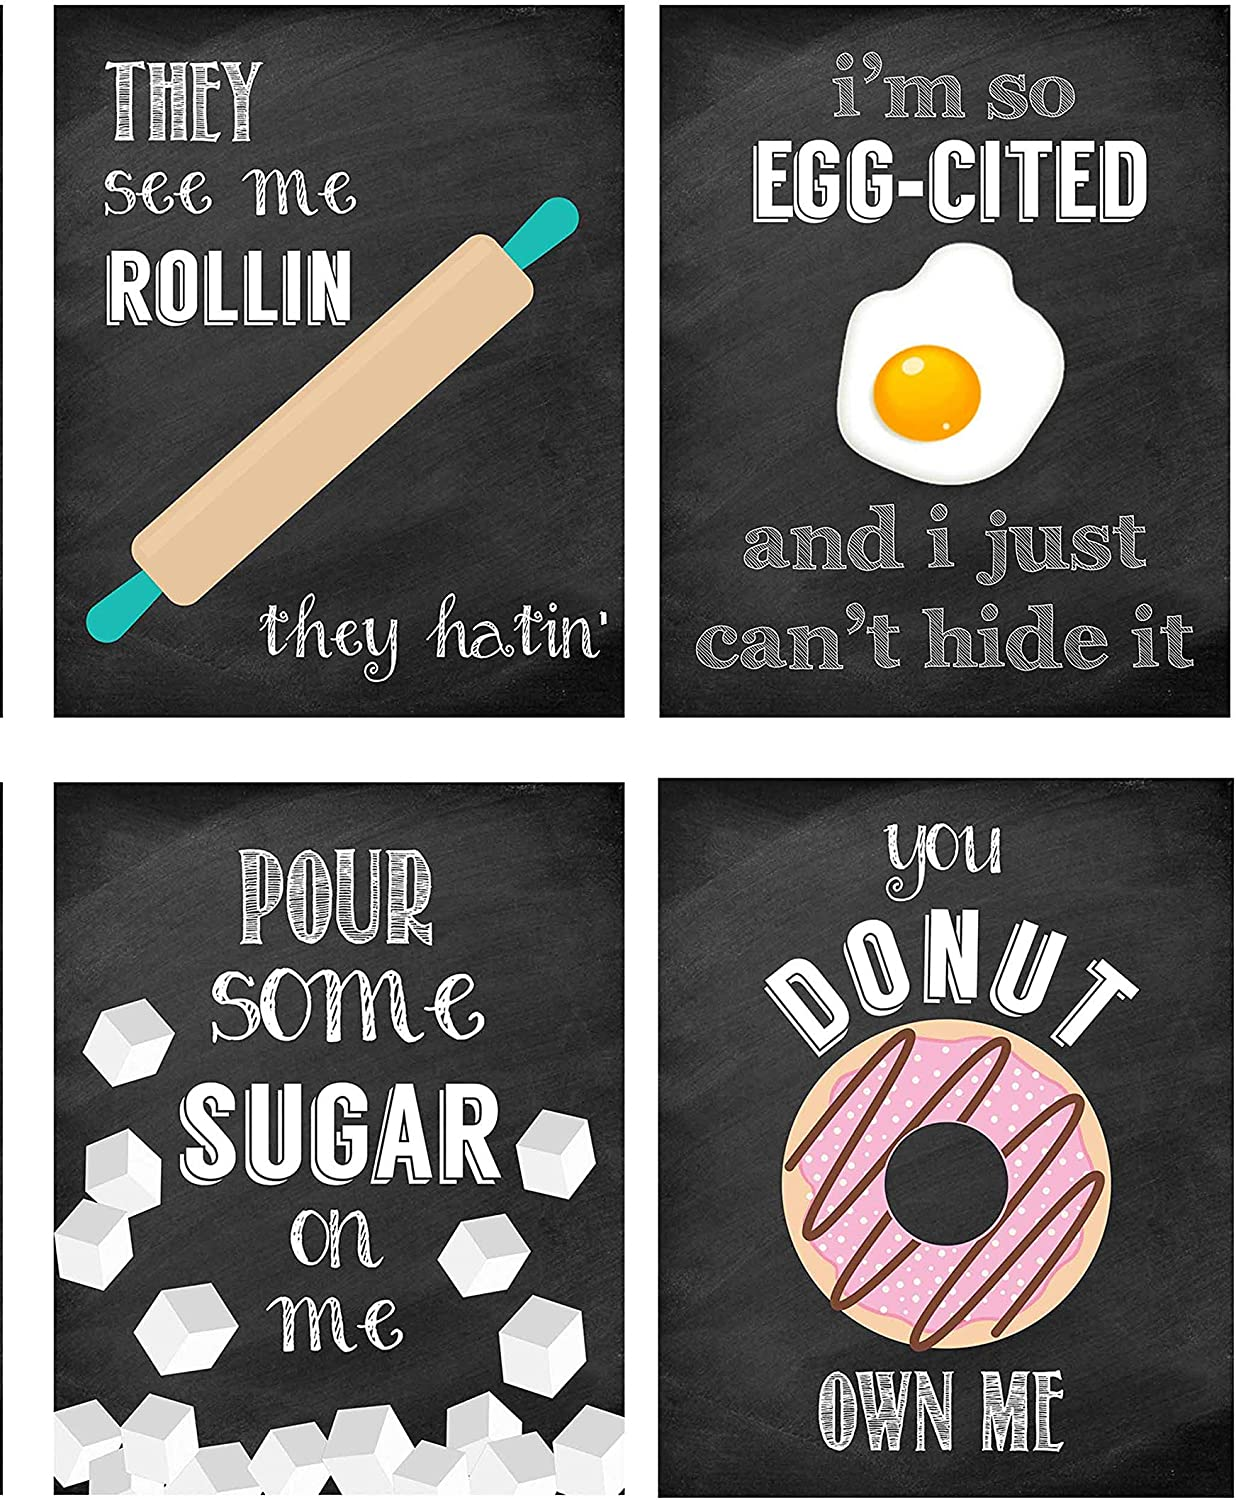 Silly Goose Gifts Funny Food Kitchen Music Lyrics Themed - Wall Art Prints Decoration (Donut Own Me)